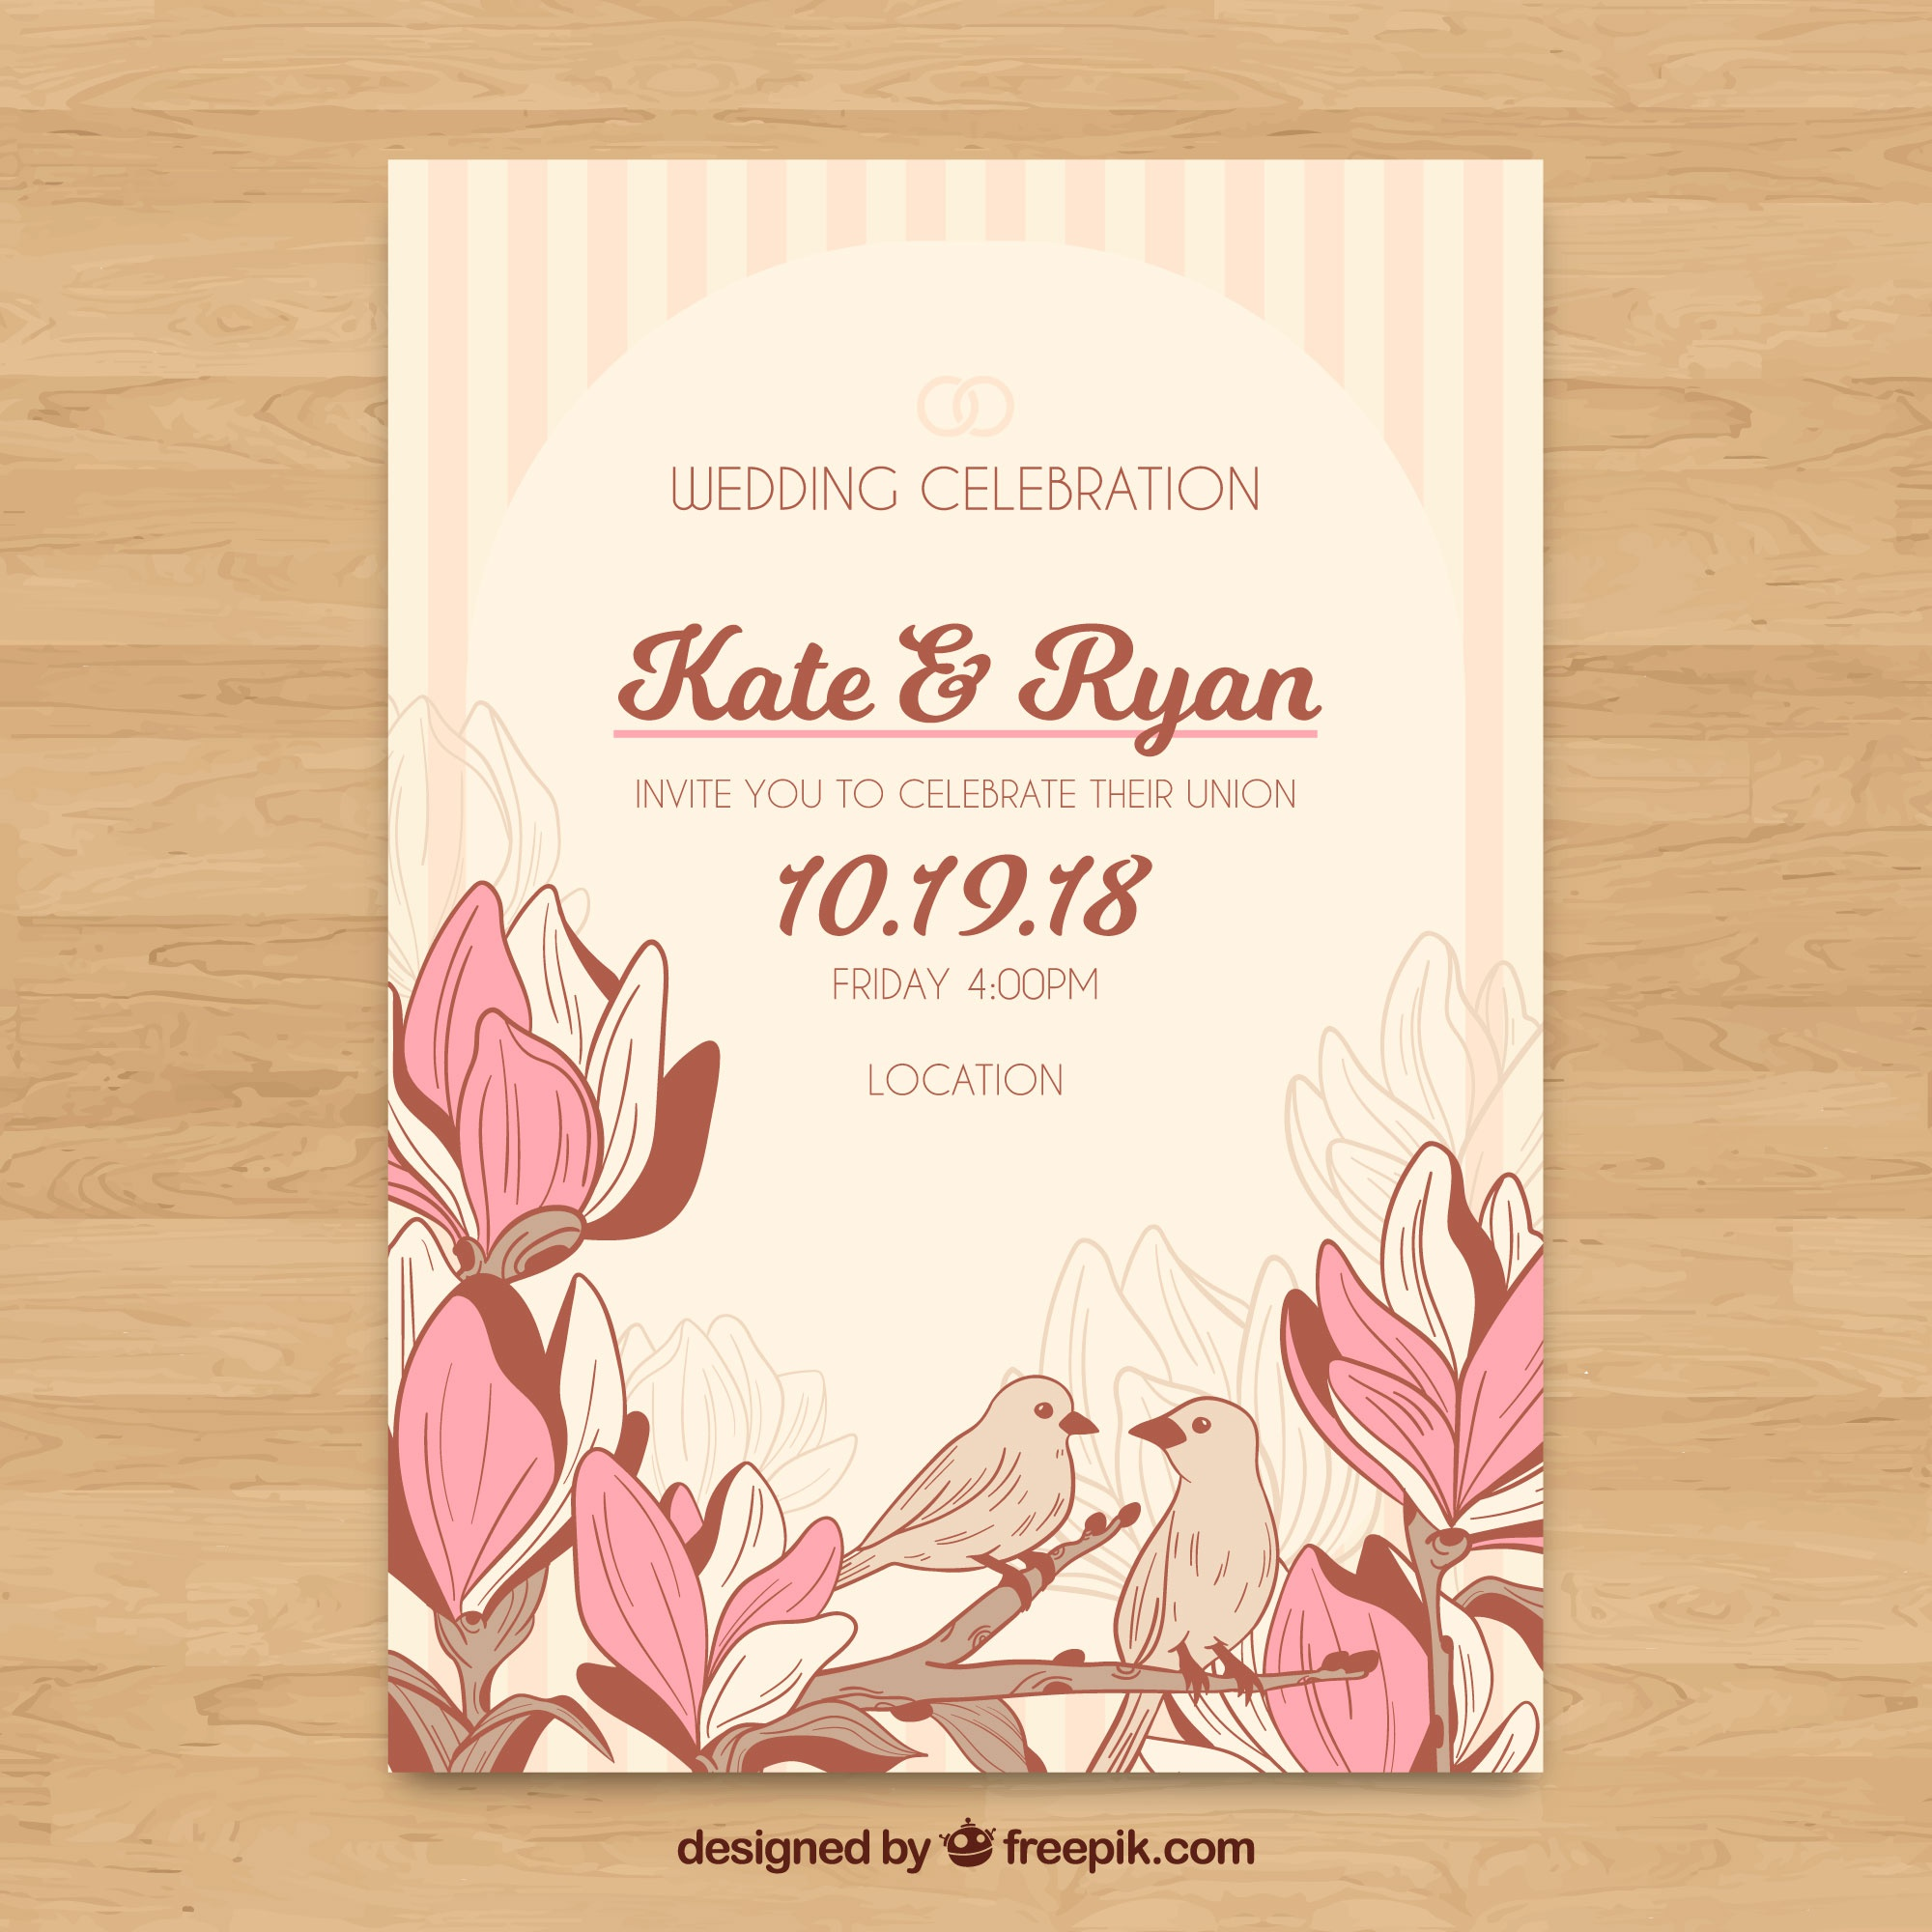 Floral wedding invitation template with vintage style